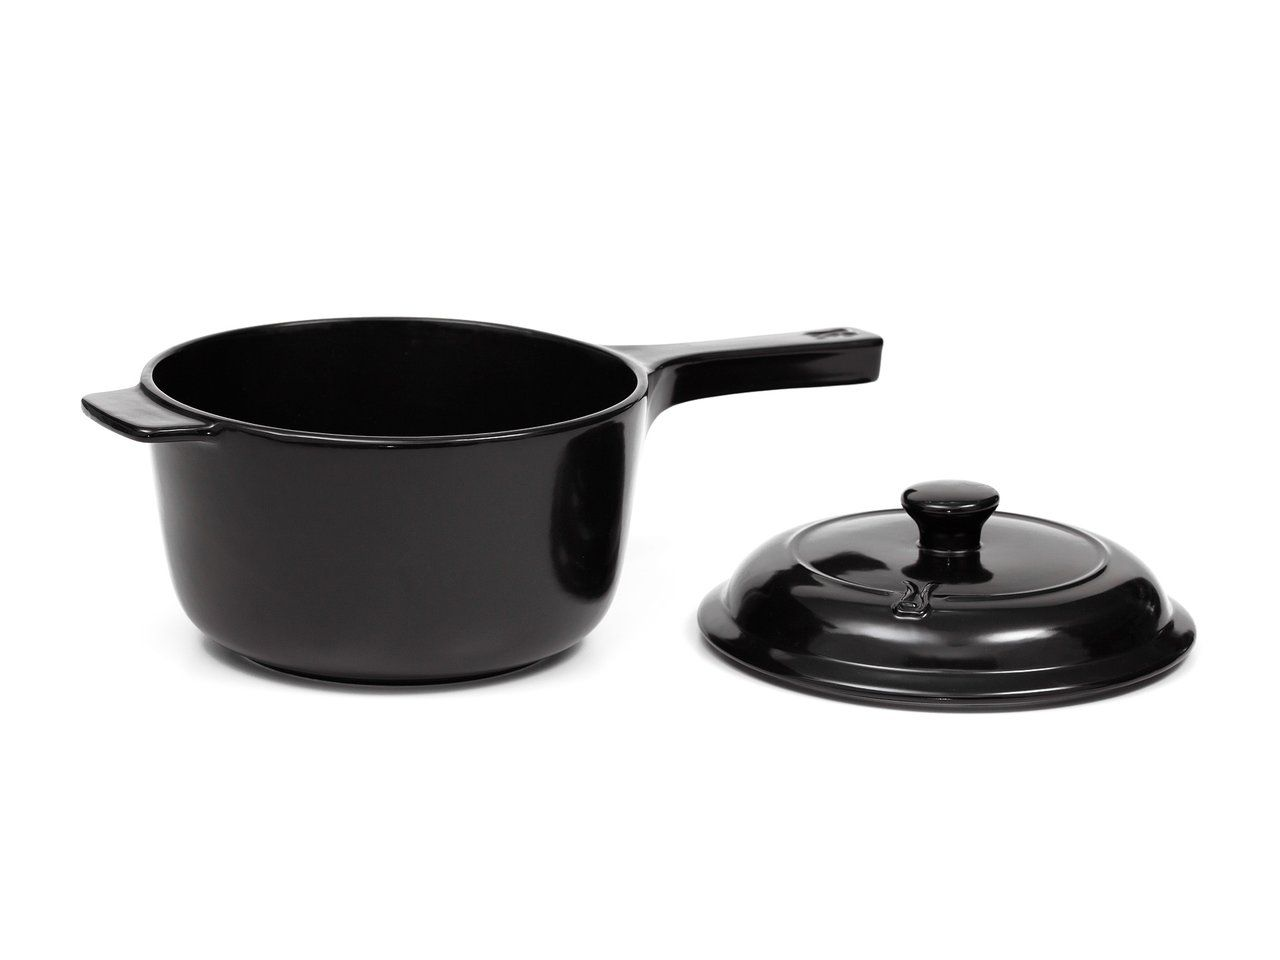 3 5 Quart Traditions Saucepan Ceramic Cookware Cookware Sale Ceramic Skillet